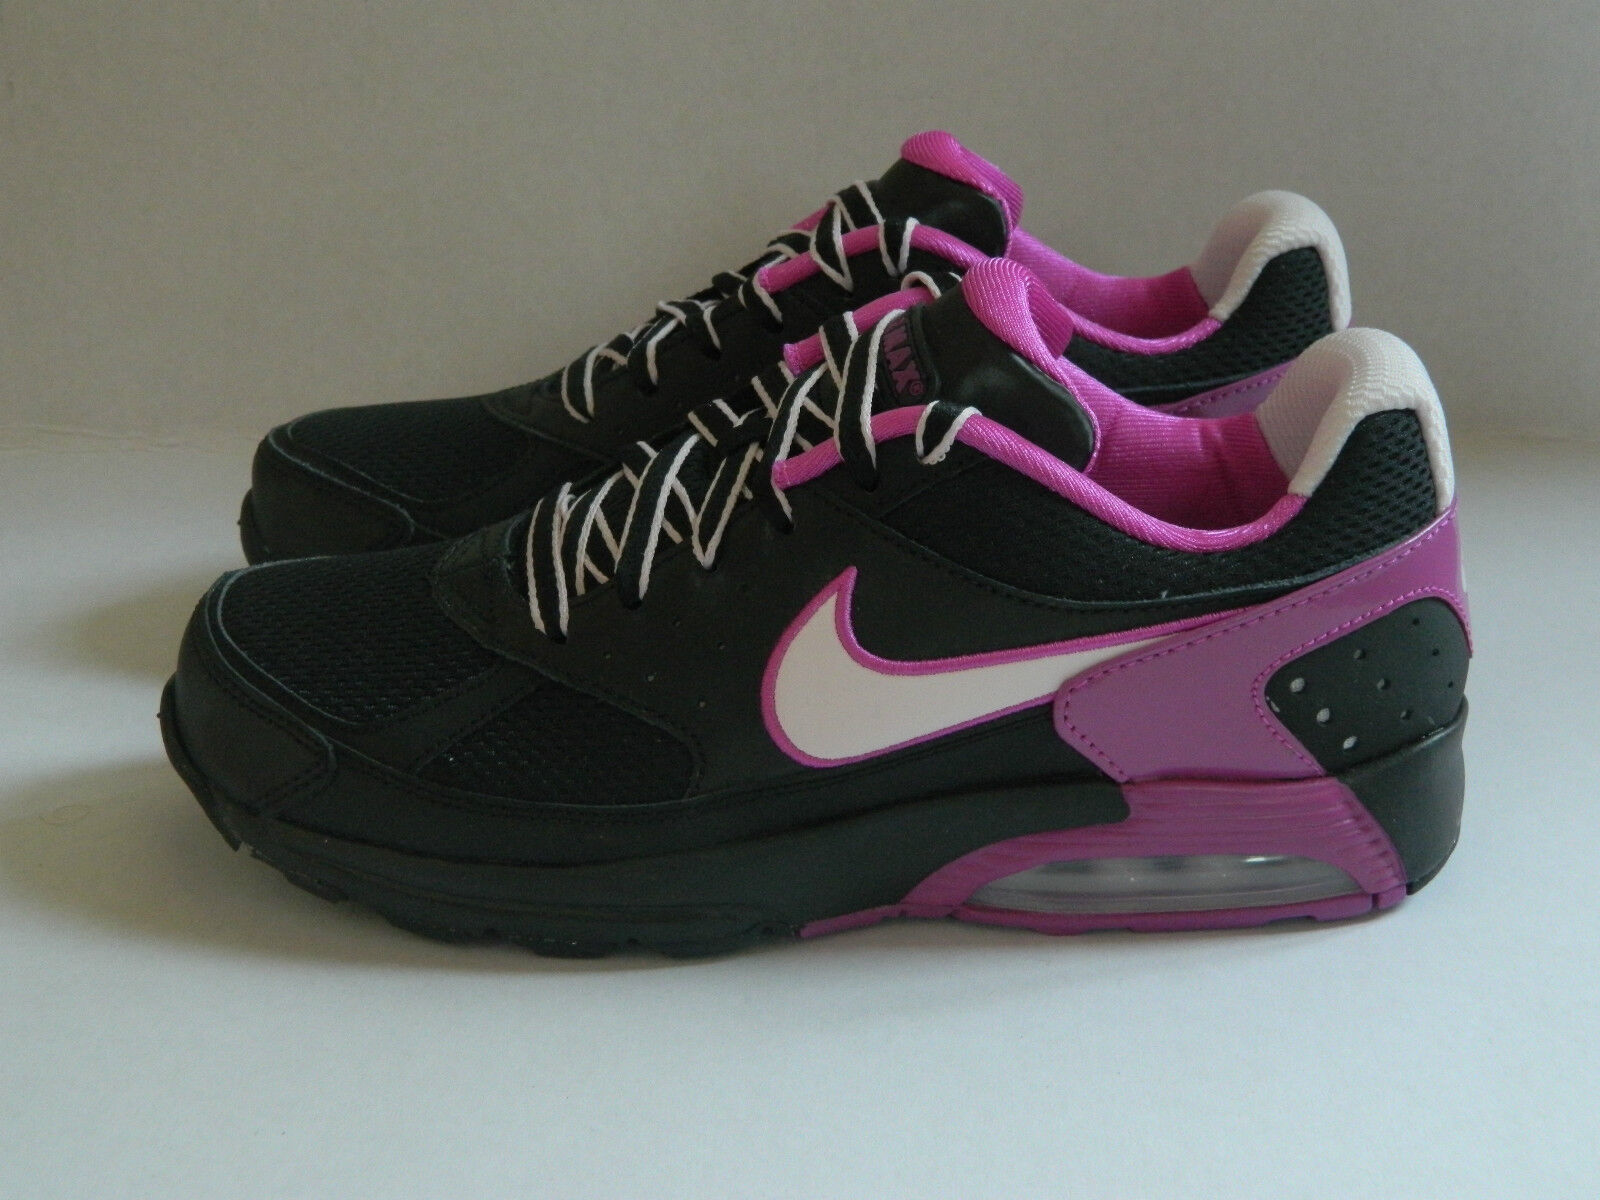 Nike femmes  Chaussures Air Max Faze Noir /Violet/Magenta Trainers Chaussures  UK- 4_4.5 b74af2